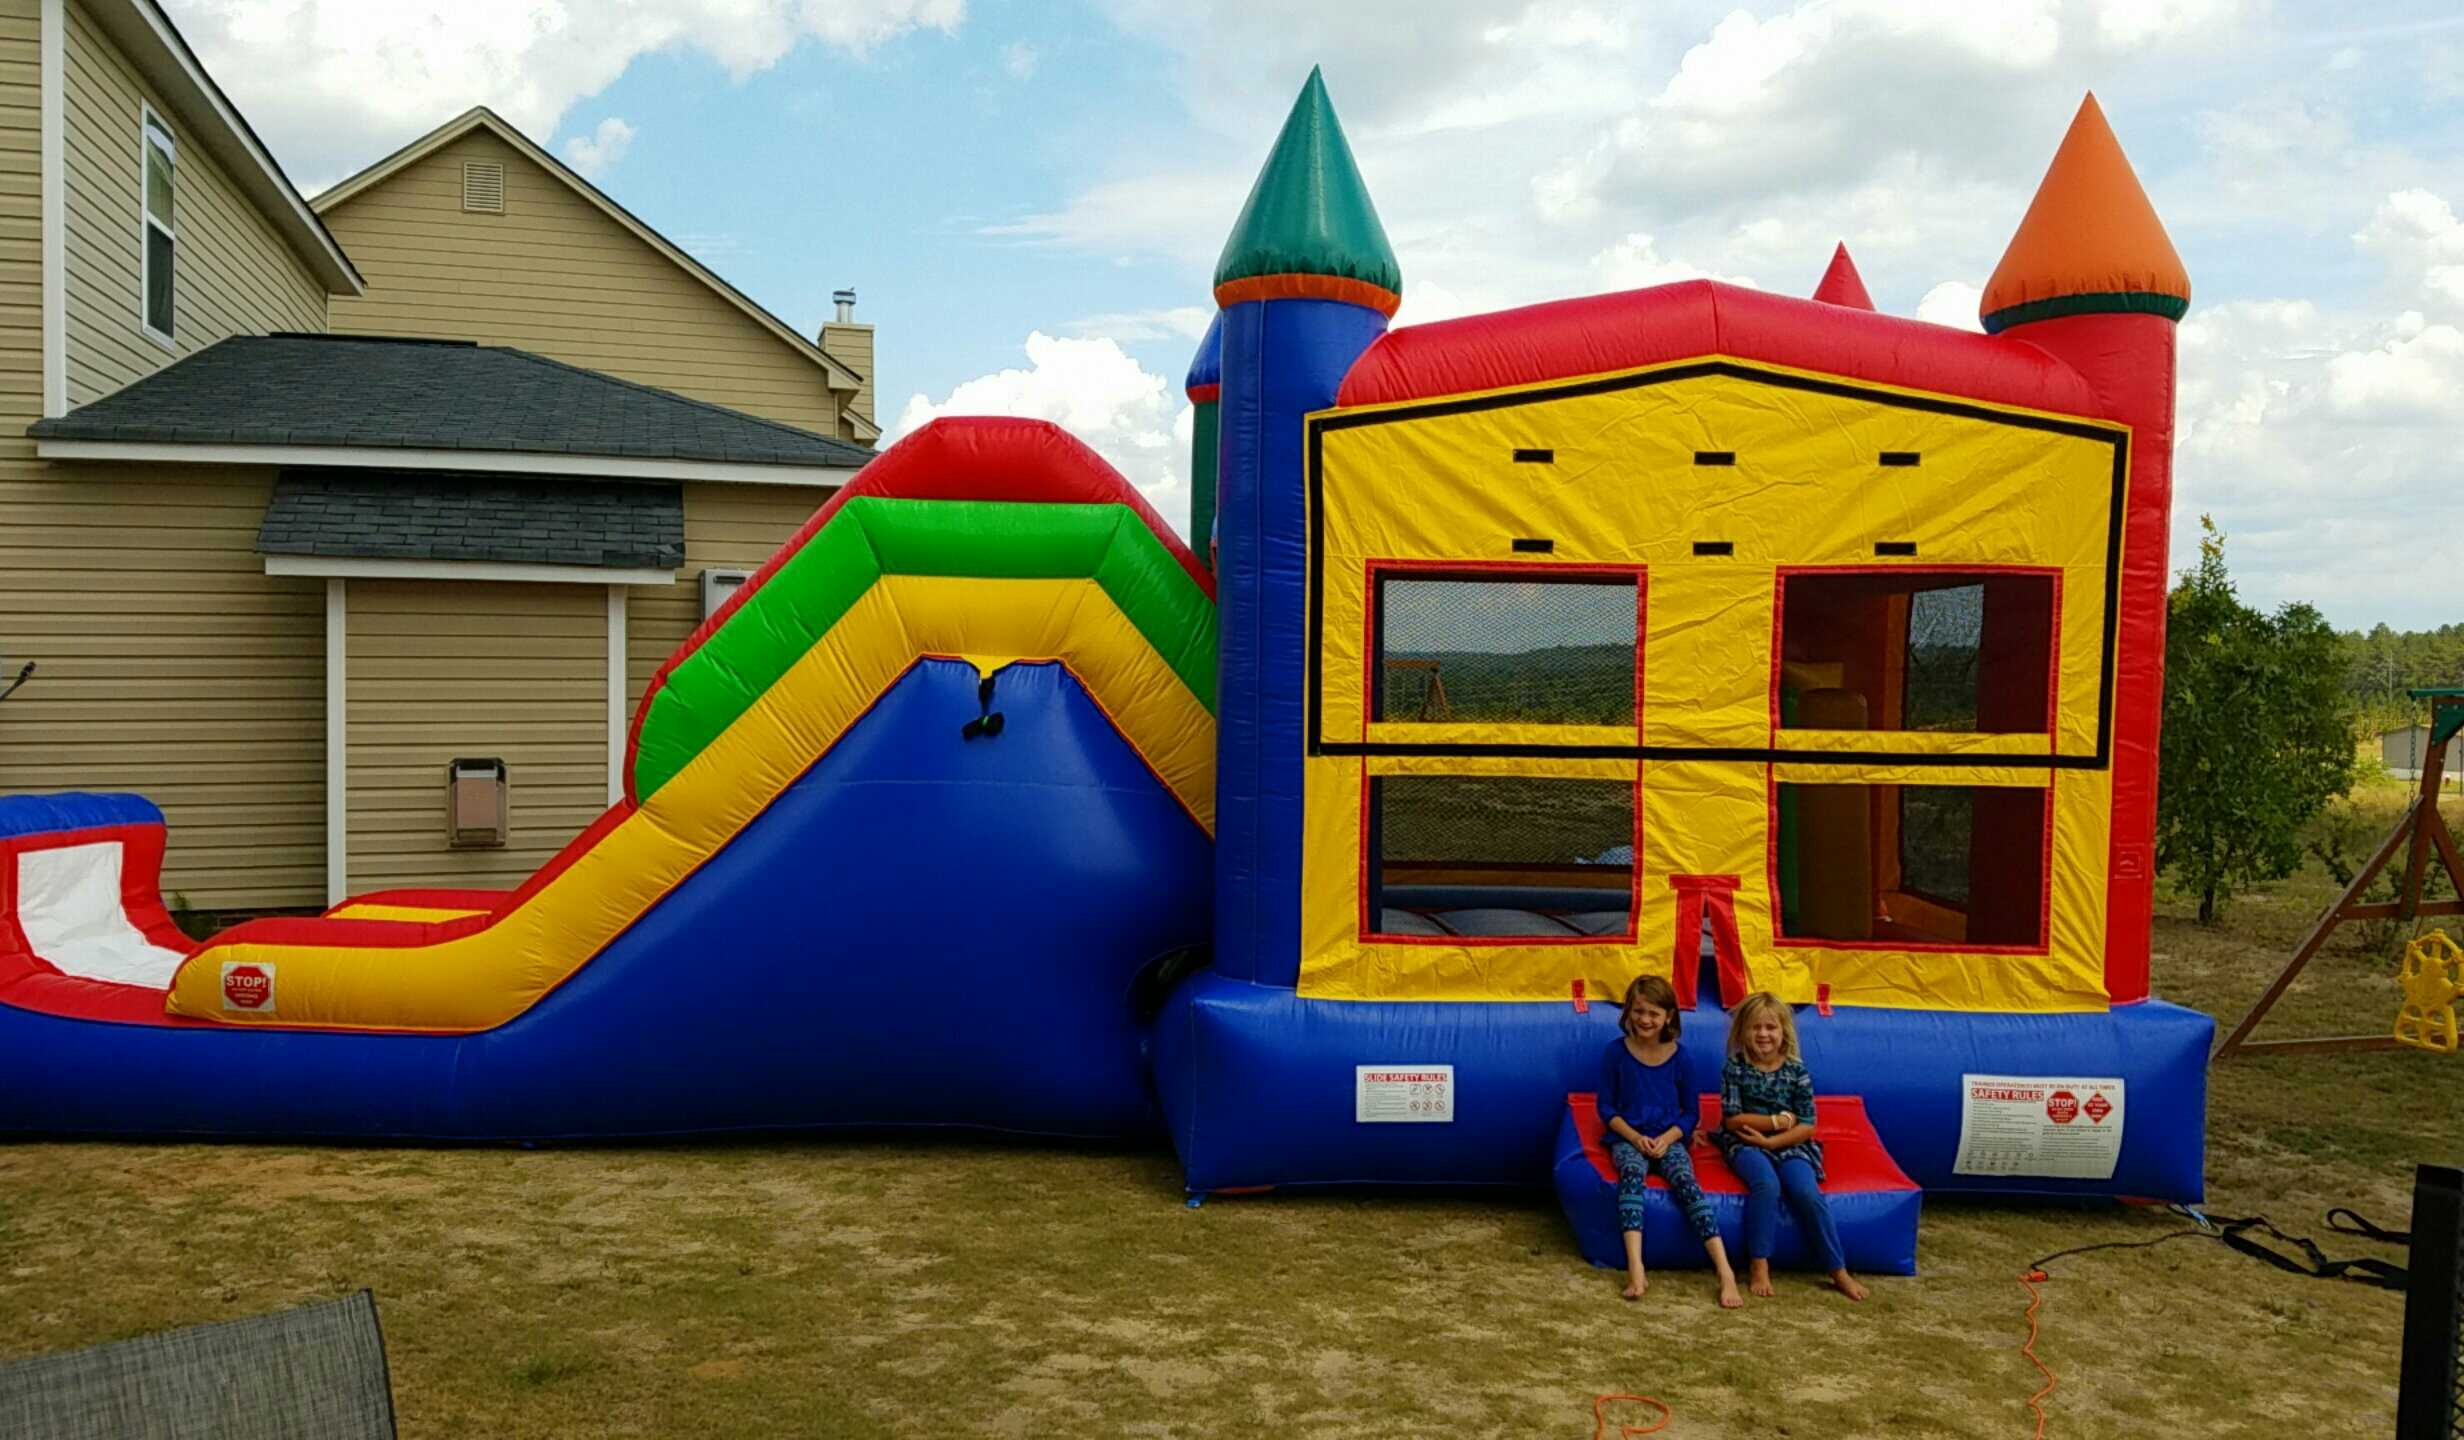 bounce house rental aiken sc, bounce house rental augusta ga